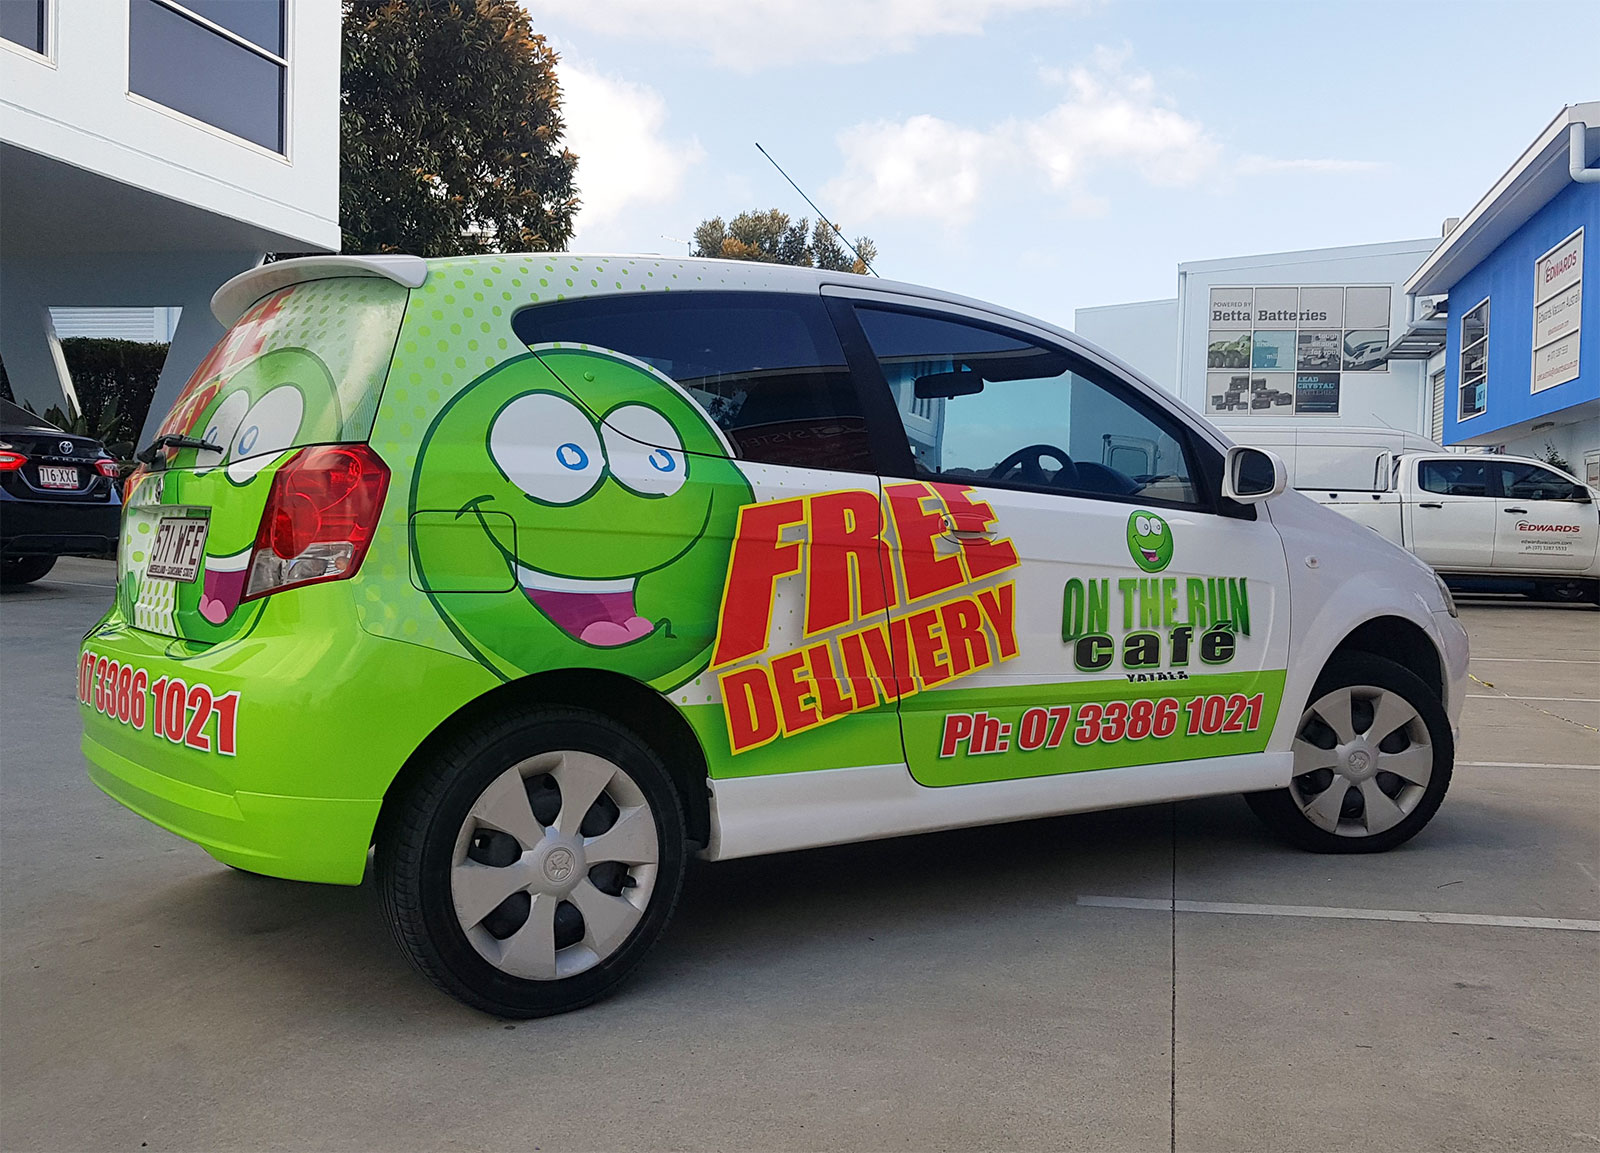 mobile-food-delivery-yatala-qld-on-the-run-cafe-car-1